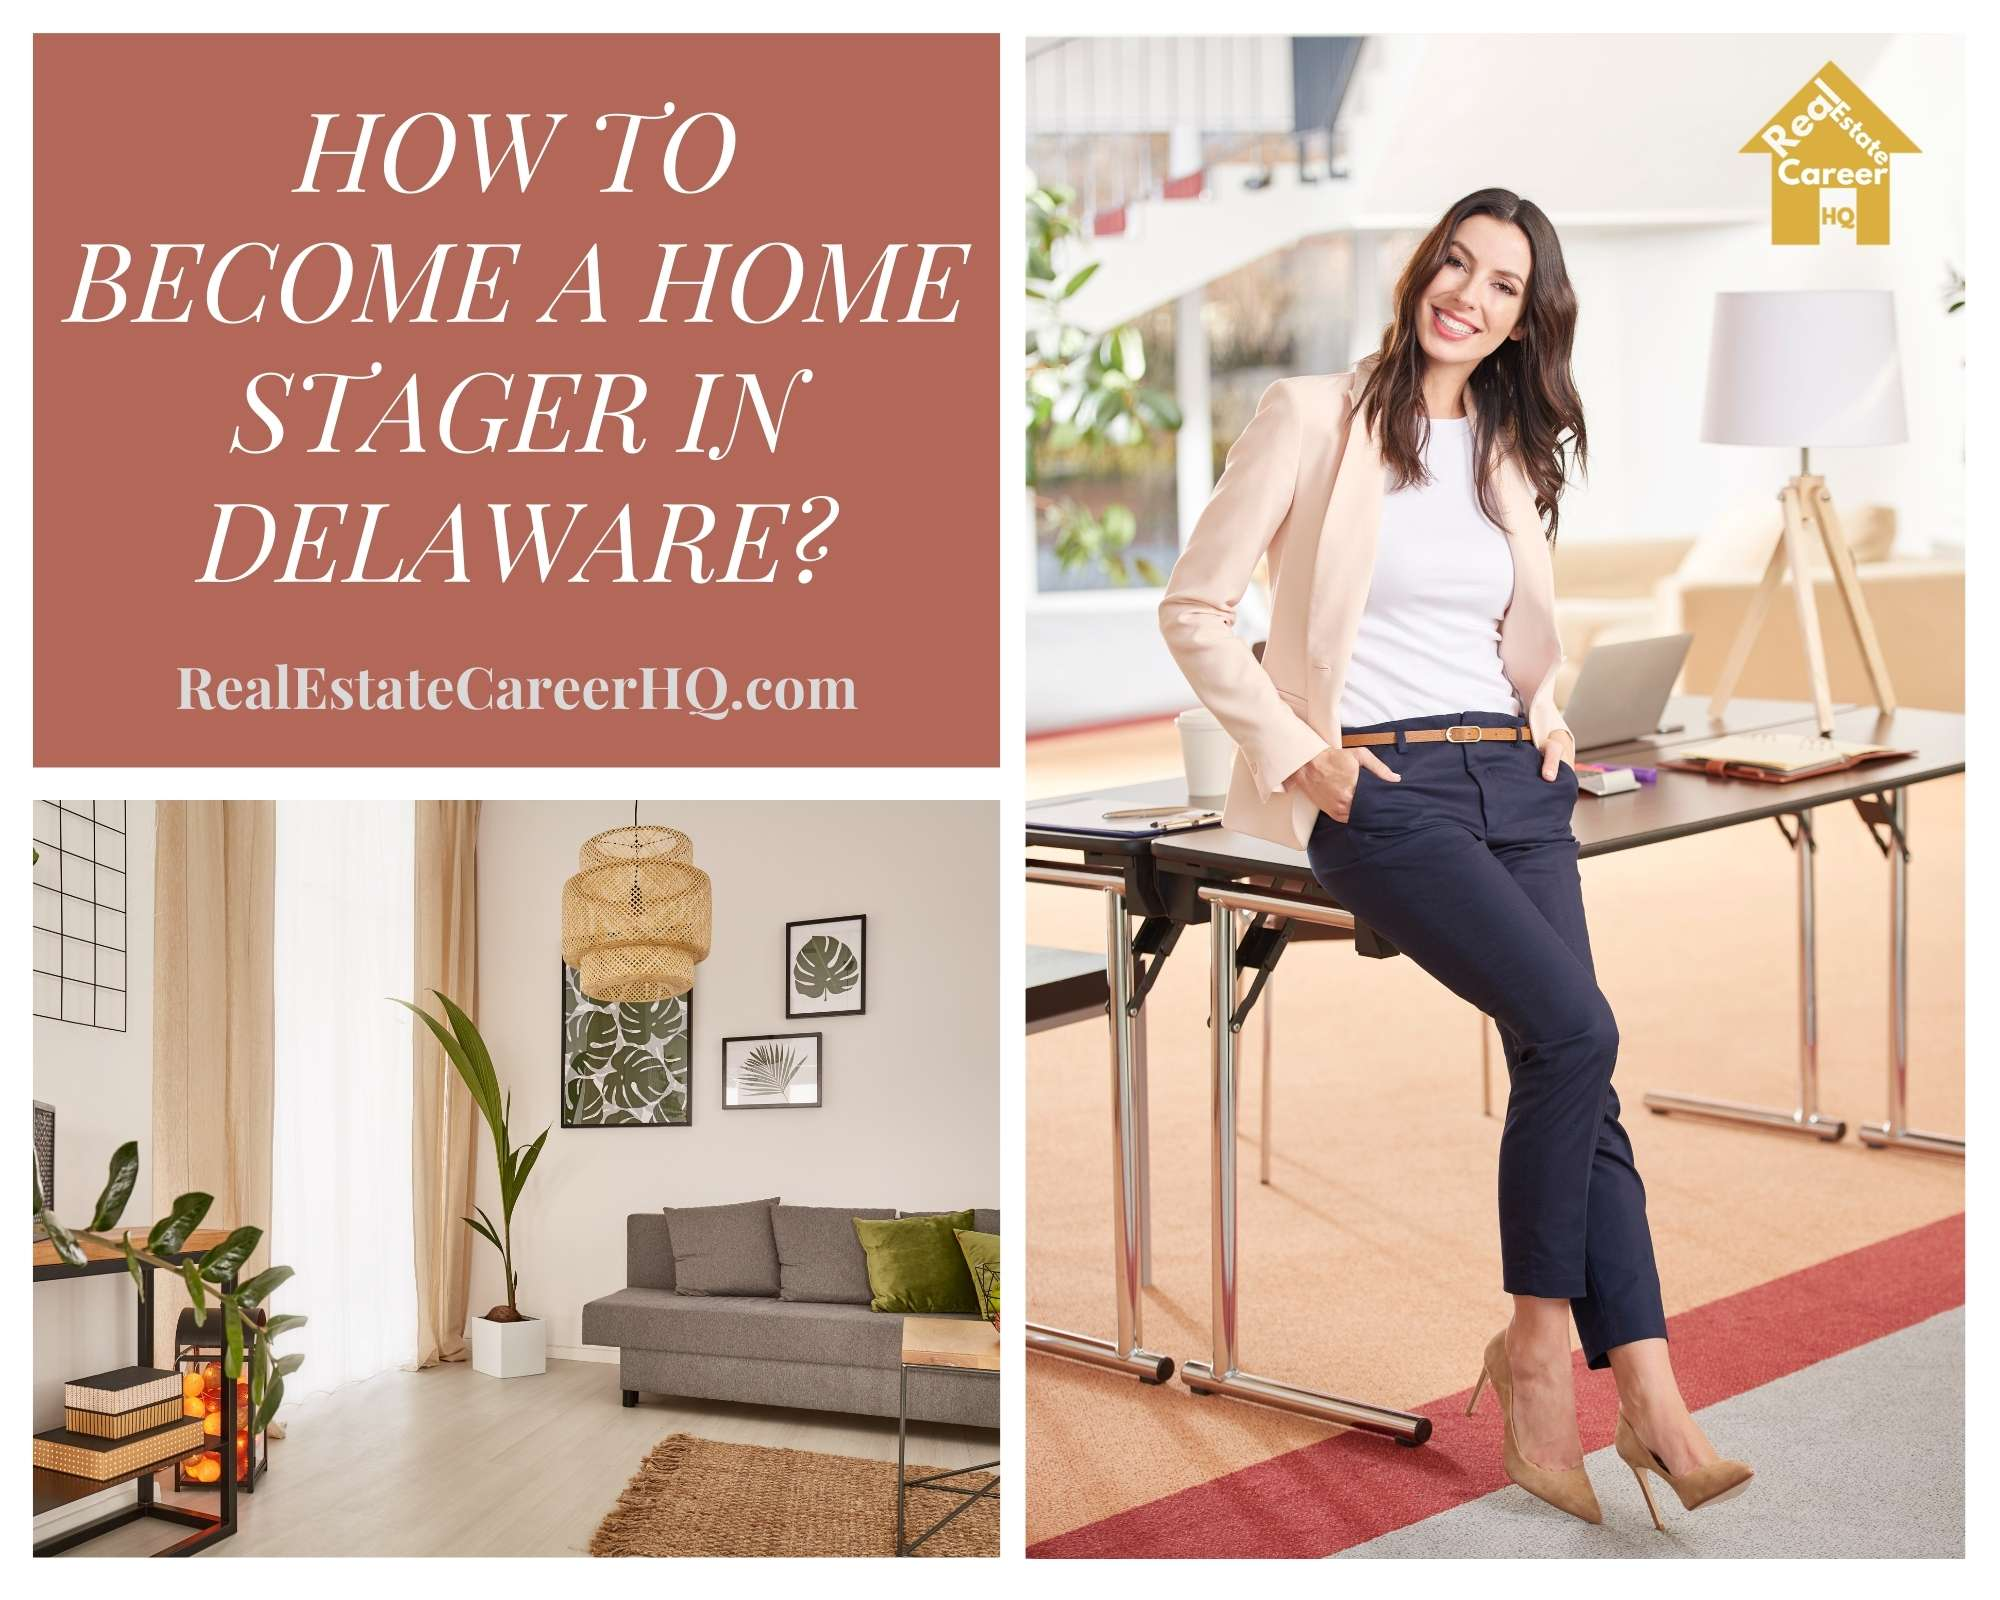 How to Become a Home Stager in Delaware